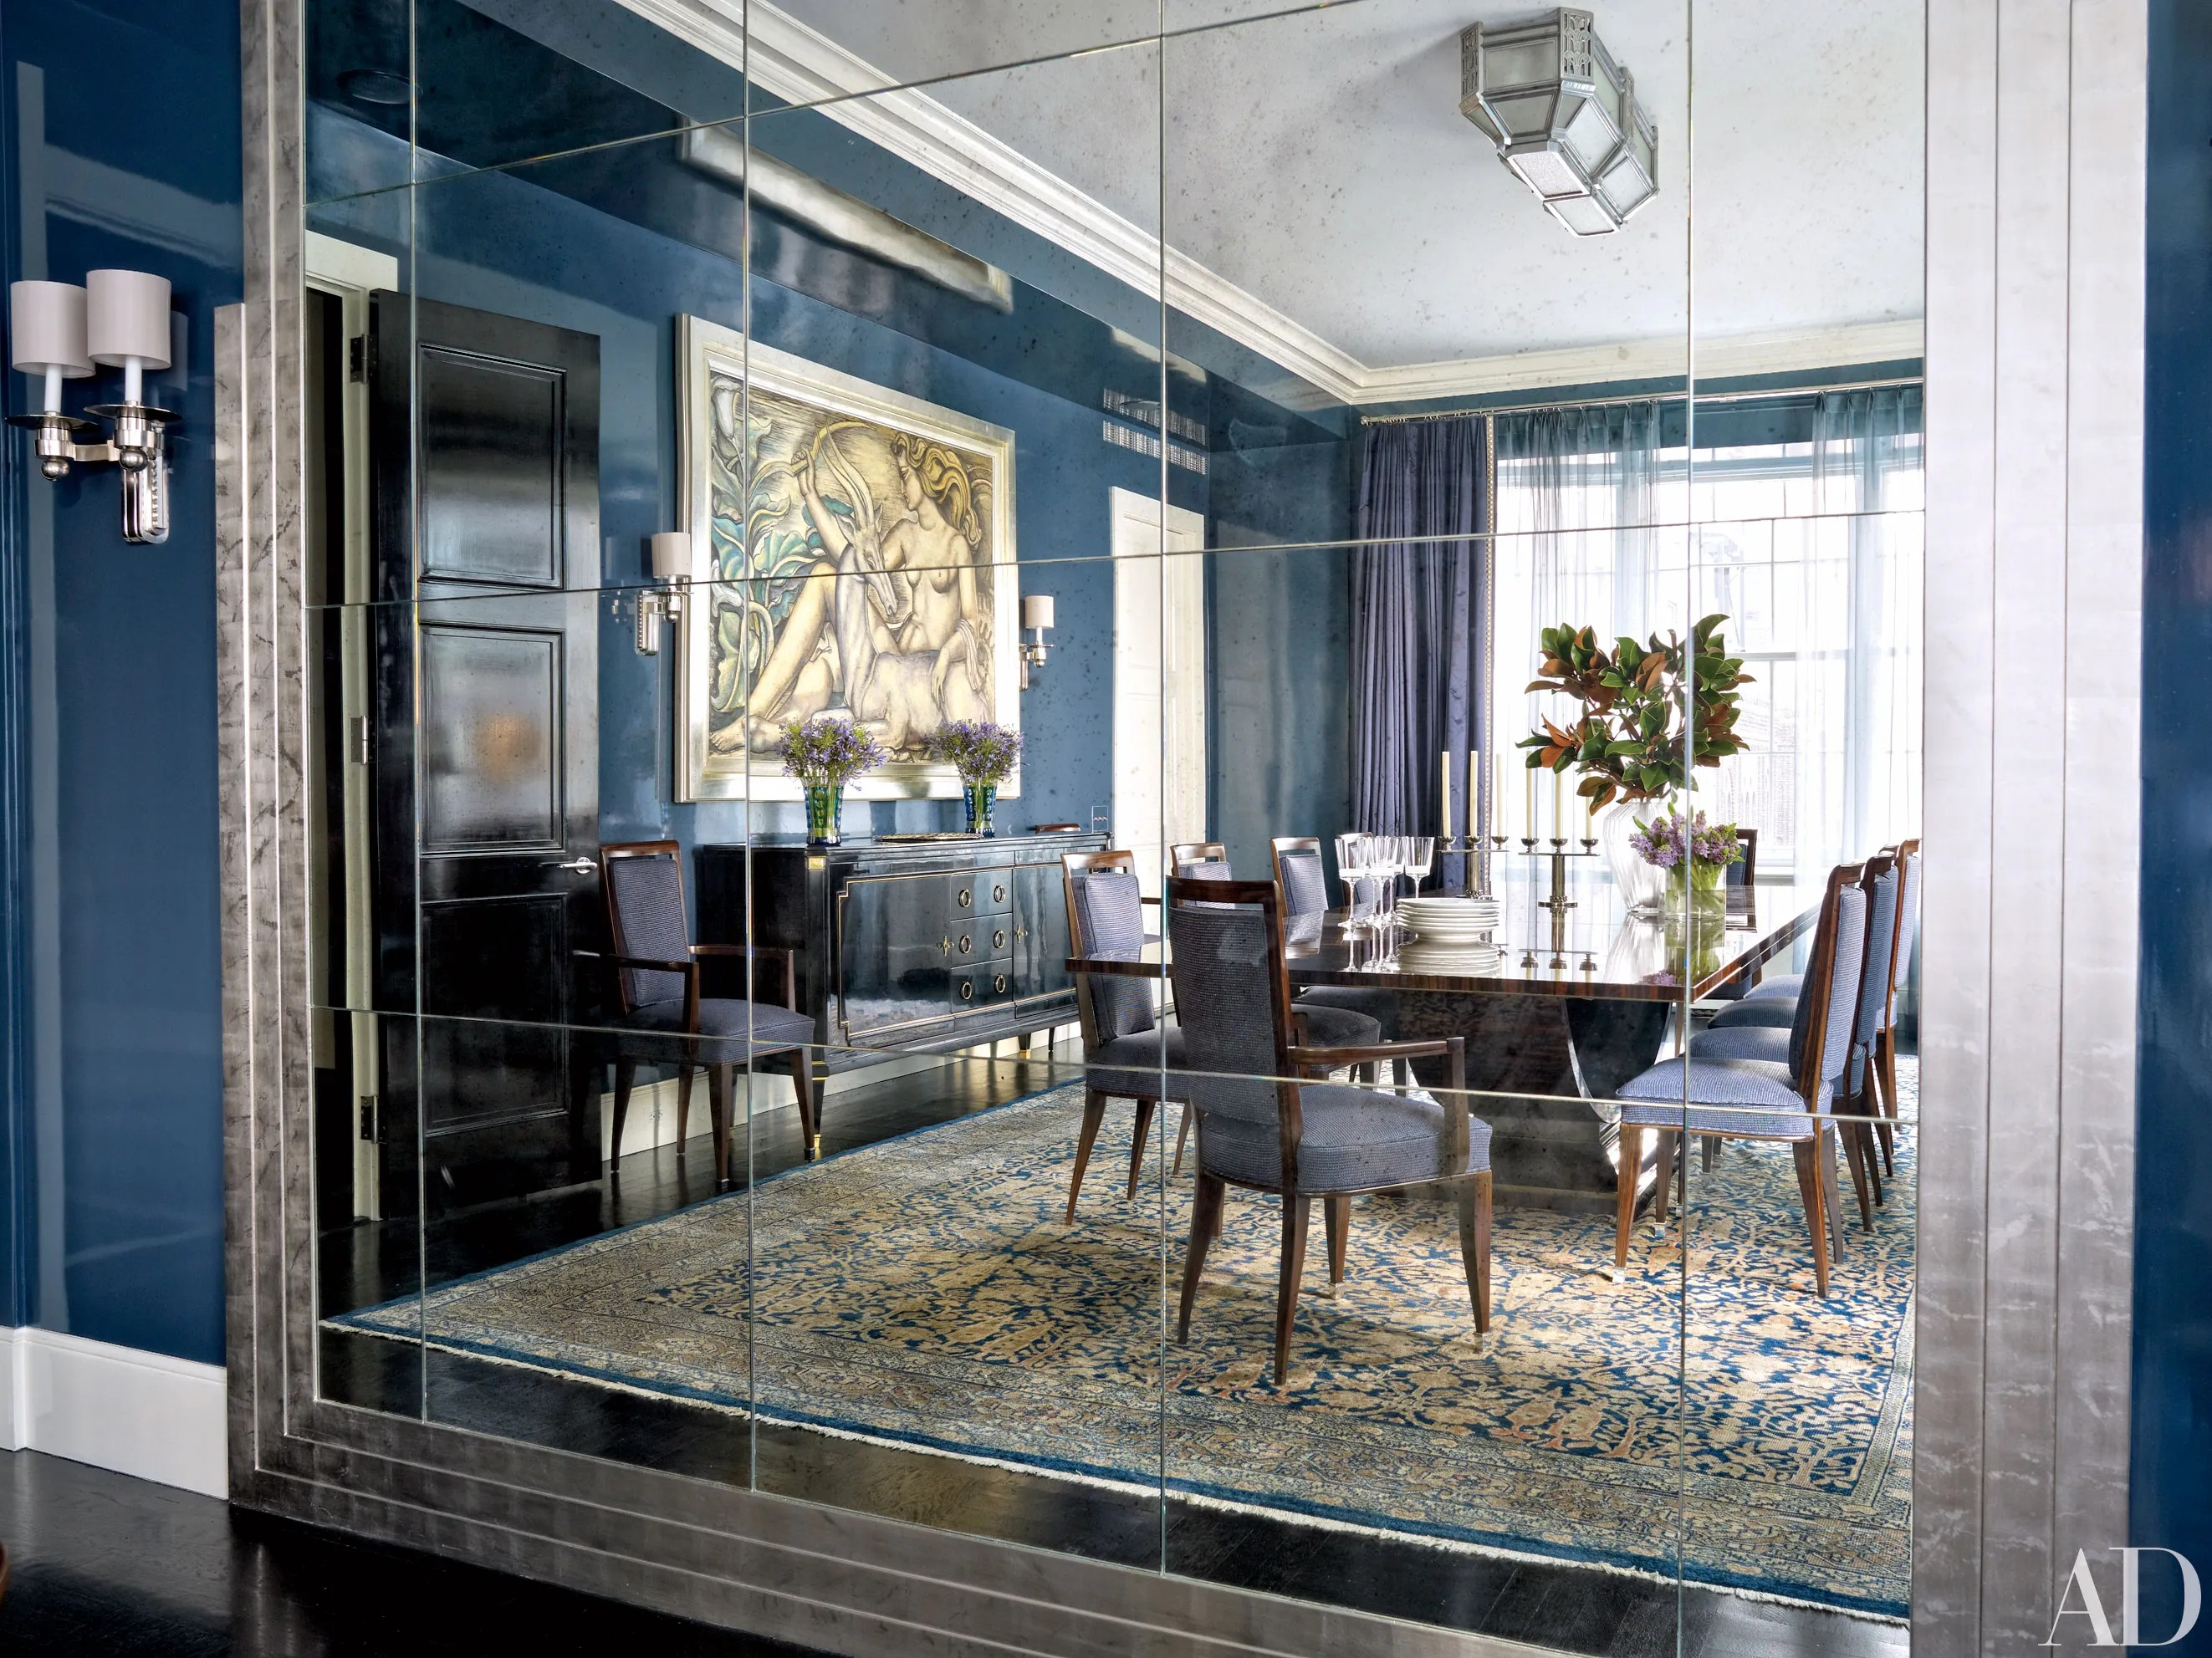 Art Deco Design Cuisine How To Add Art Deco Style To Any Room Architectural Digest